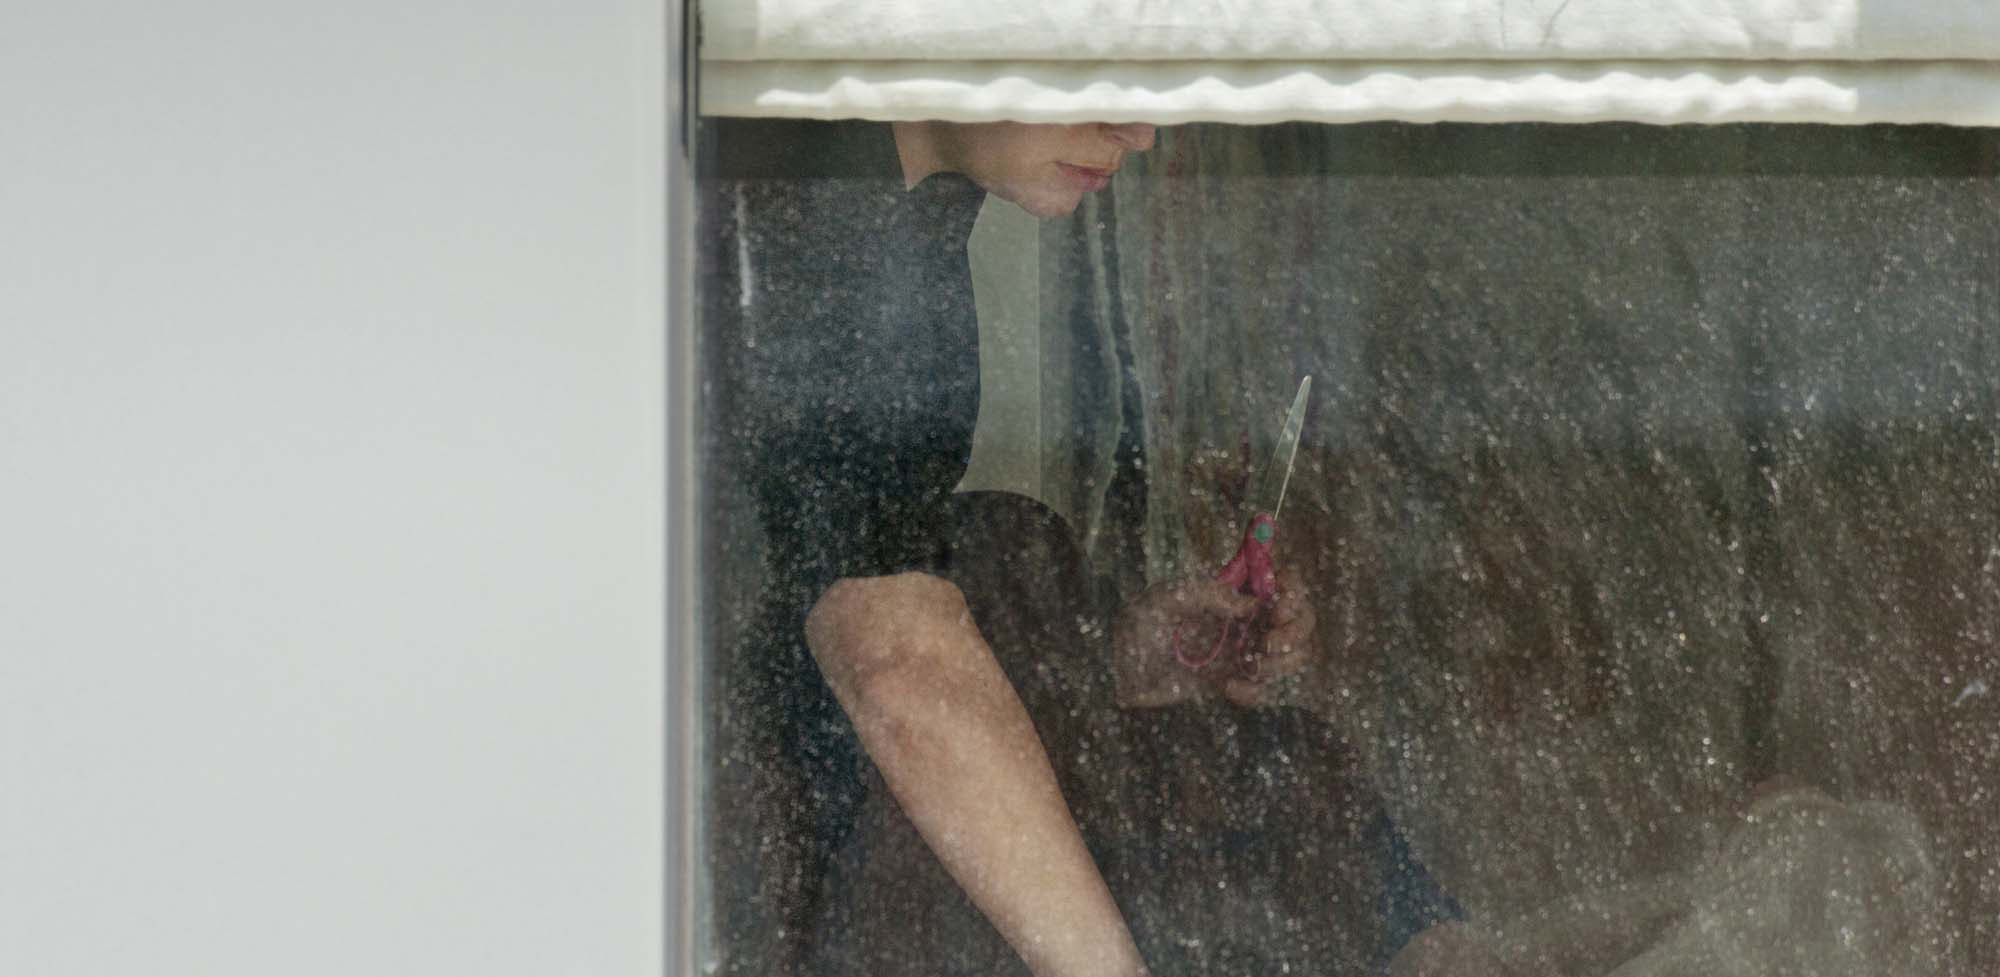 The Neighbors #3, 2012, pigment print, 46 x 26 inches, edition of 5